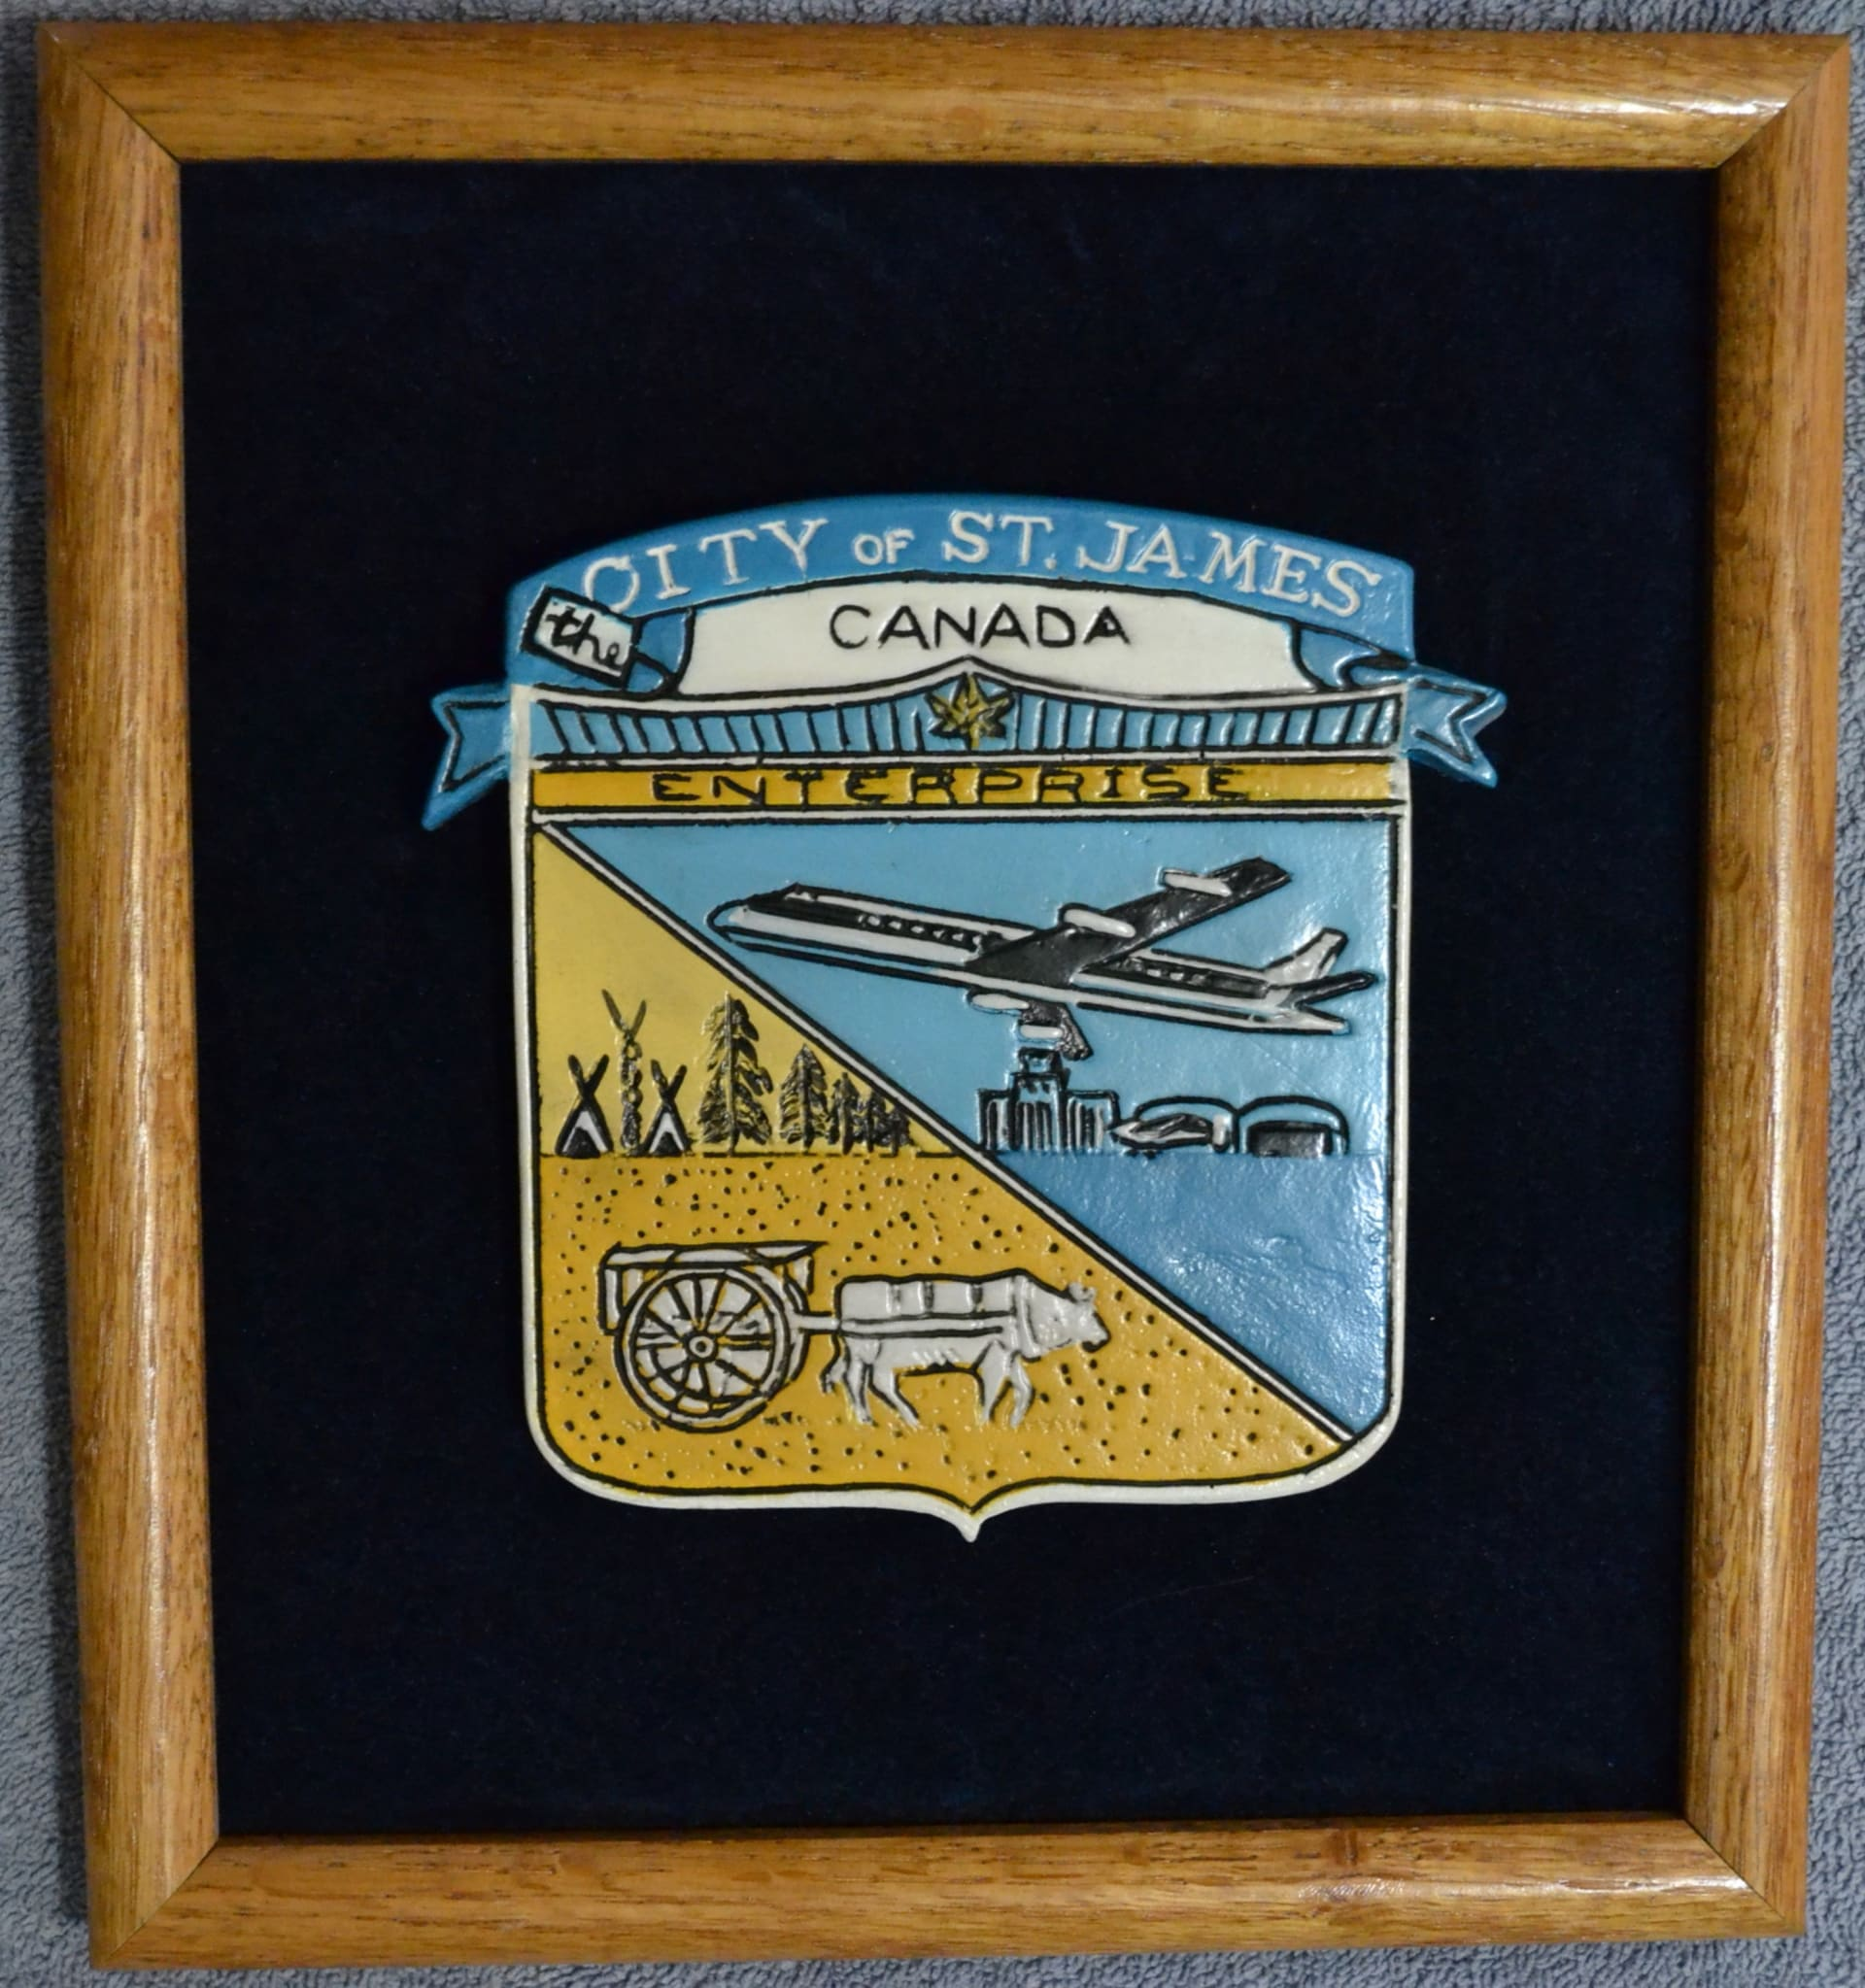 City-Of-St-James-Plaque.3-w1920.jpg